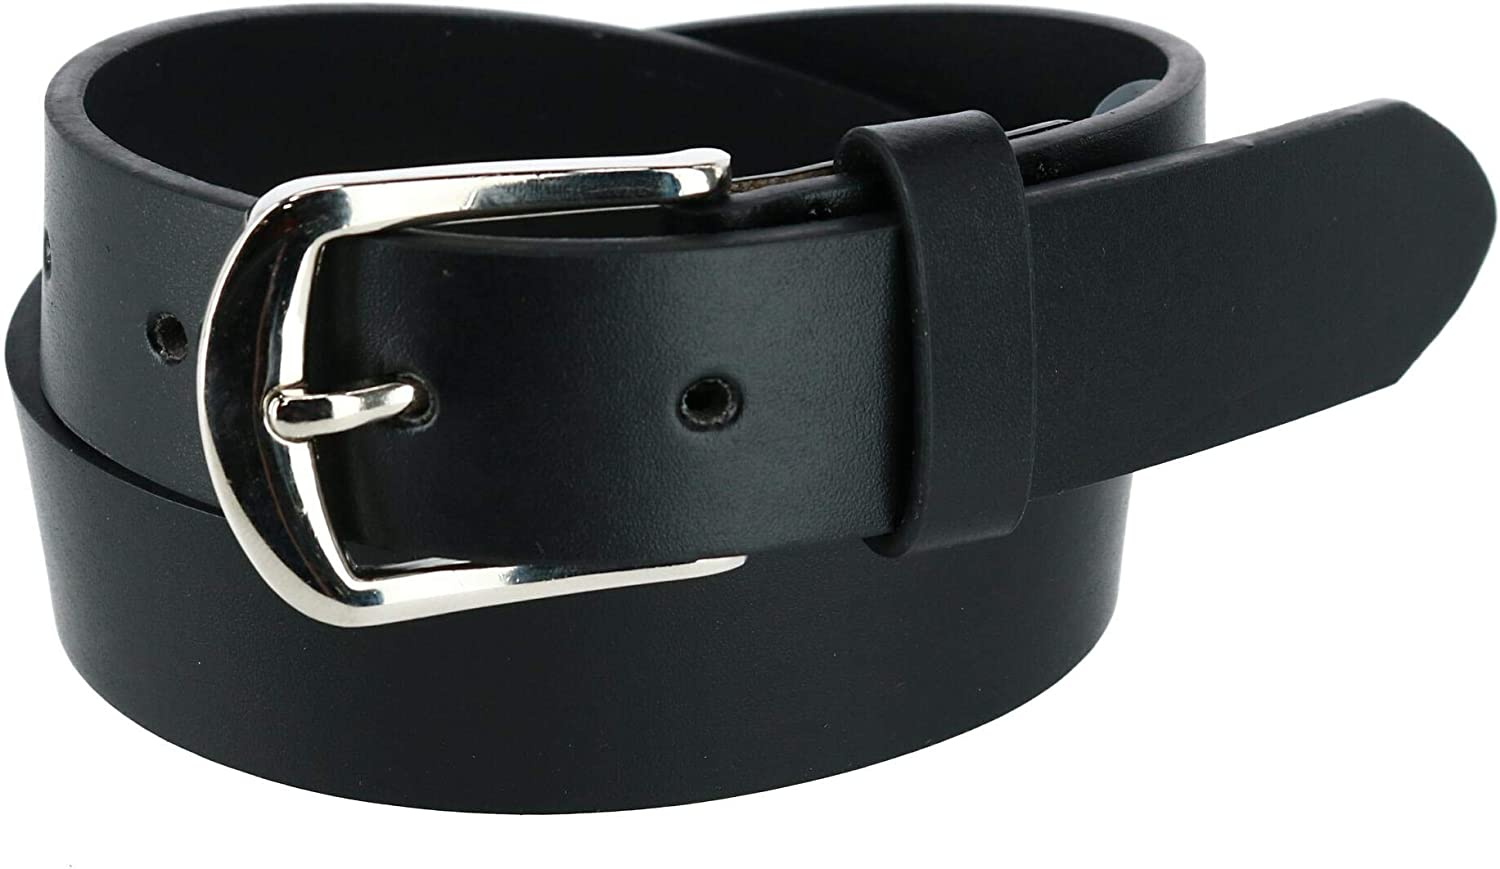 Pack of 2 Aquarius Girls Perforated Belt and Solid Belt